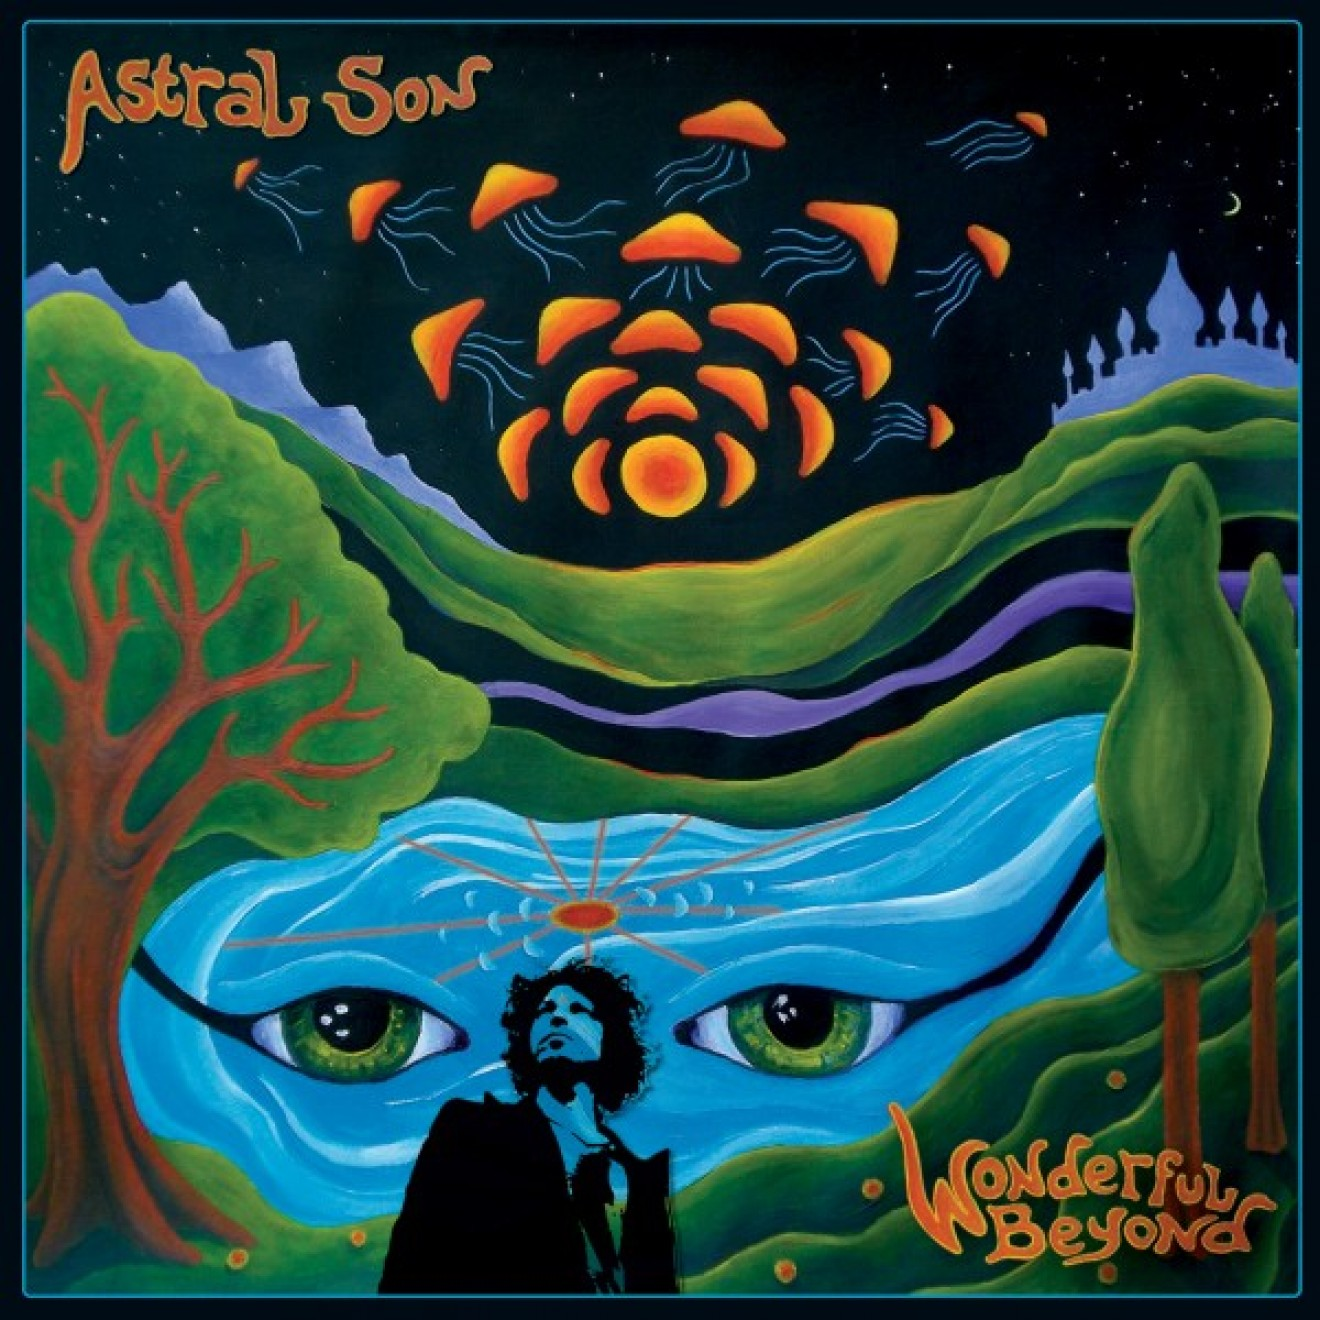 ASTRAL SON - wonderful beyond LP klar/blau